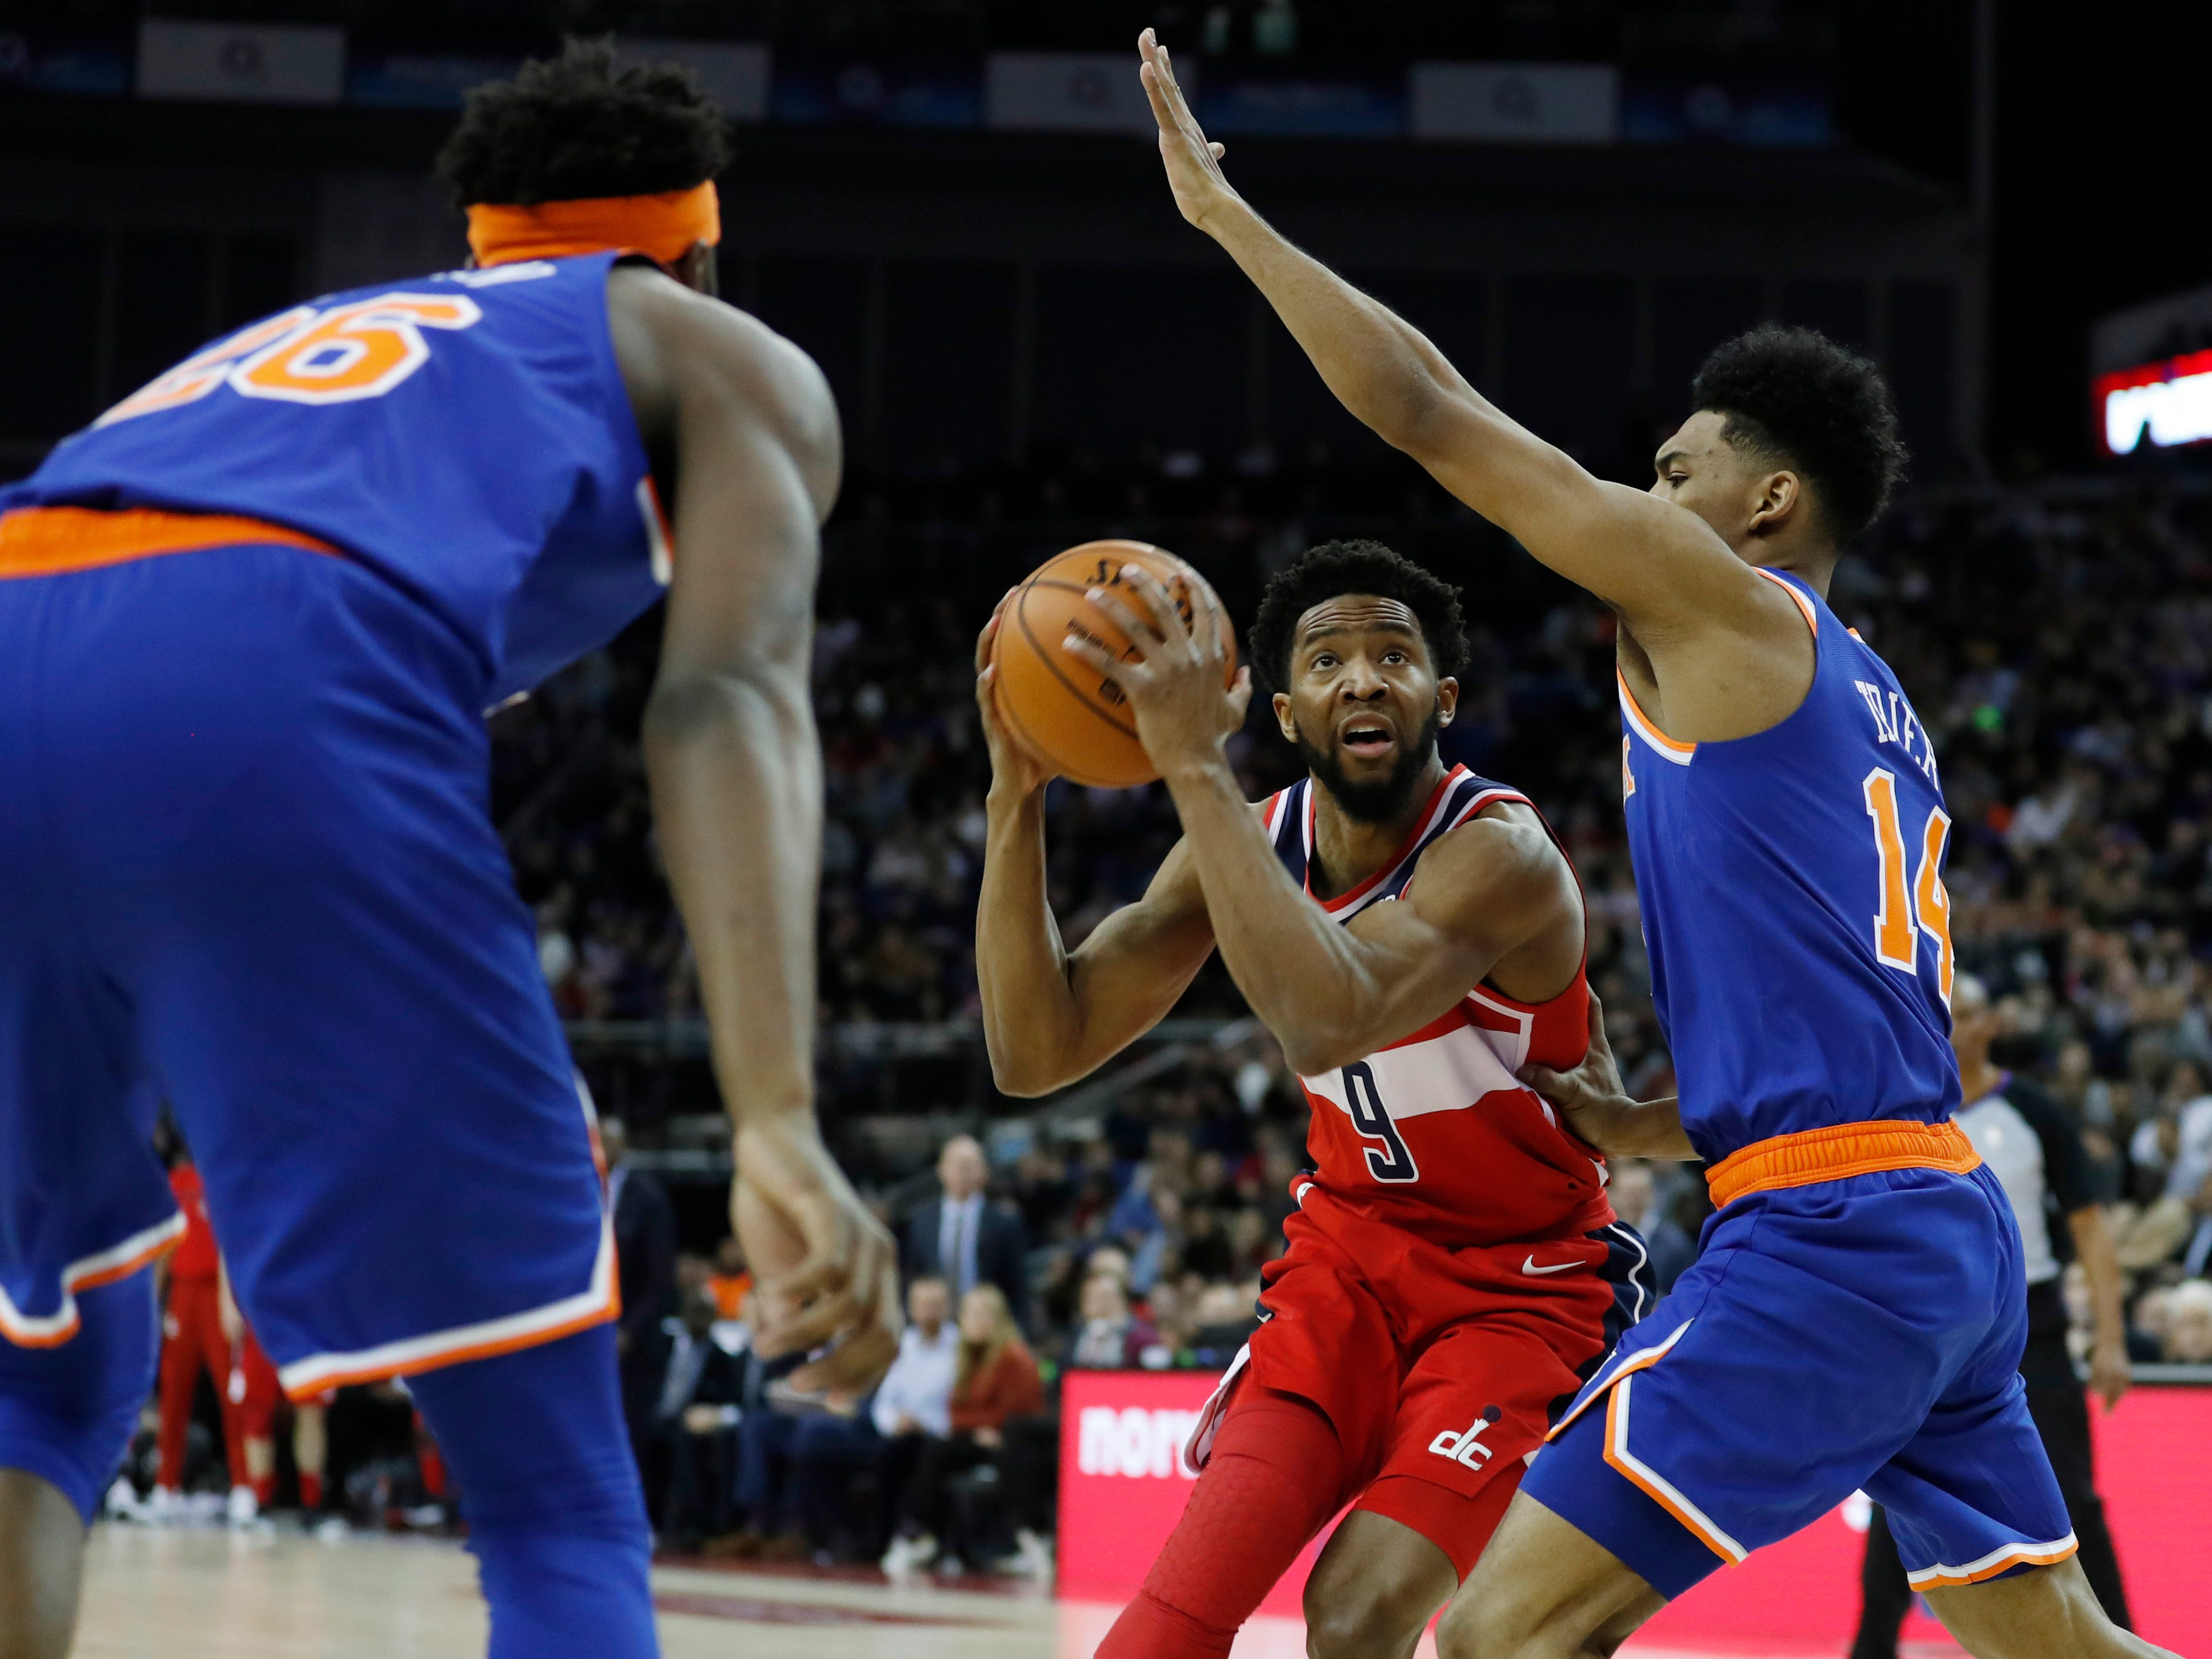 Washington Wizards guard Chasson Randle (9) drives to the basket as New York Knicks guard Allonzo Trier (14) defends, during an NBA basketball game between New York Knicks and Washington Wizards at the O2 Arena, in London, Thursday, Jan.17, 2019.